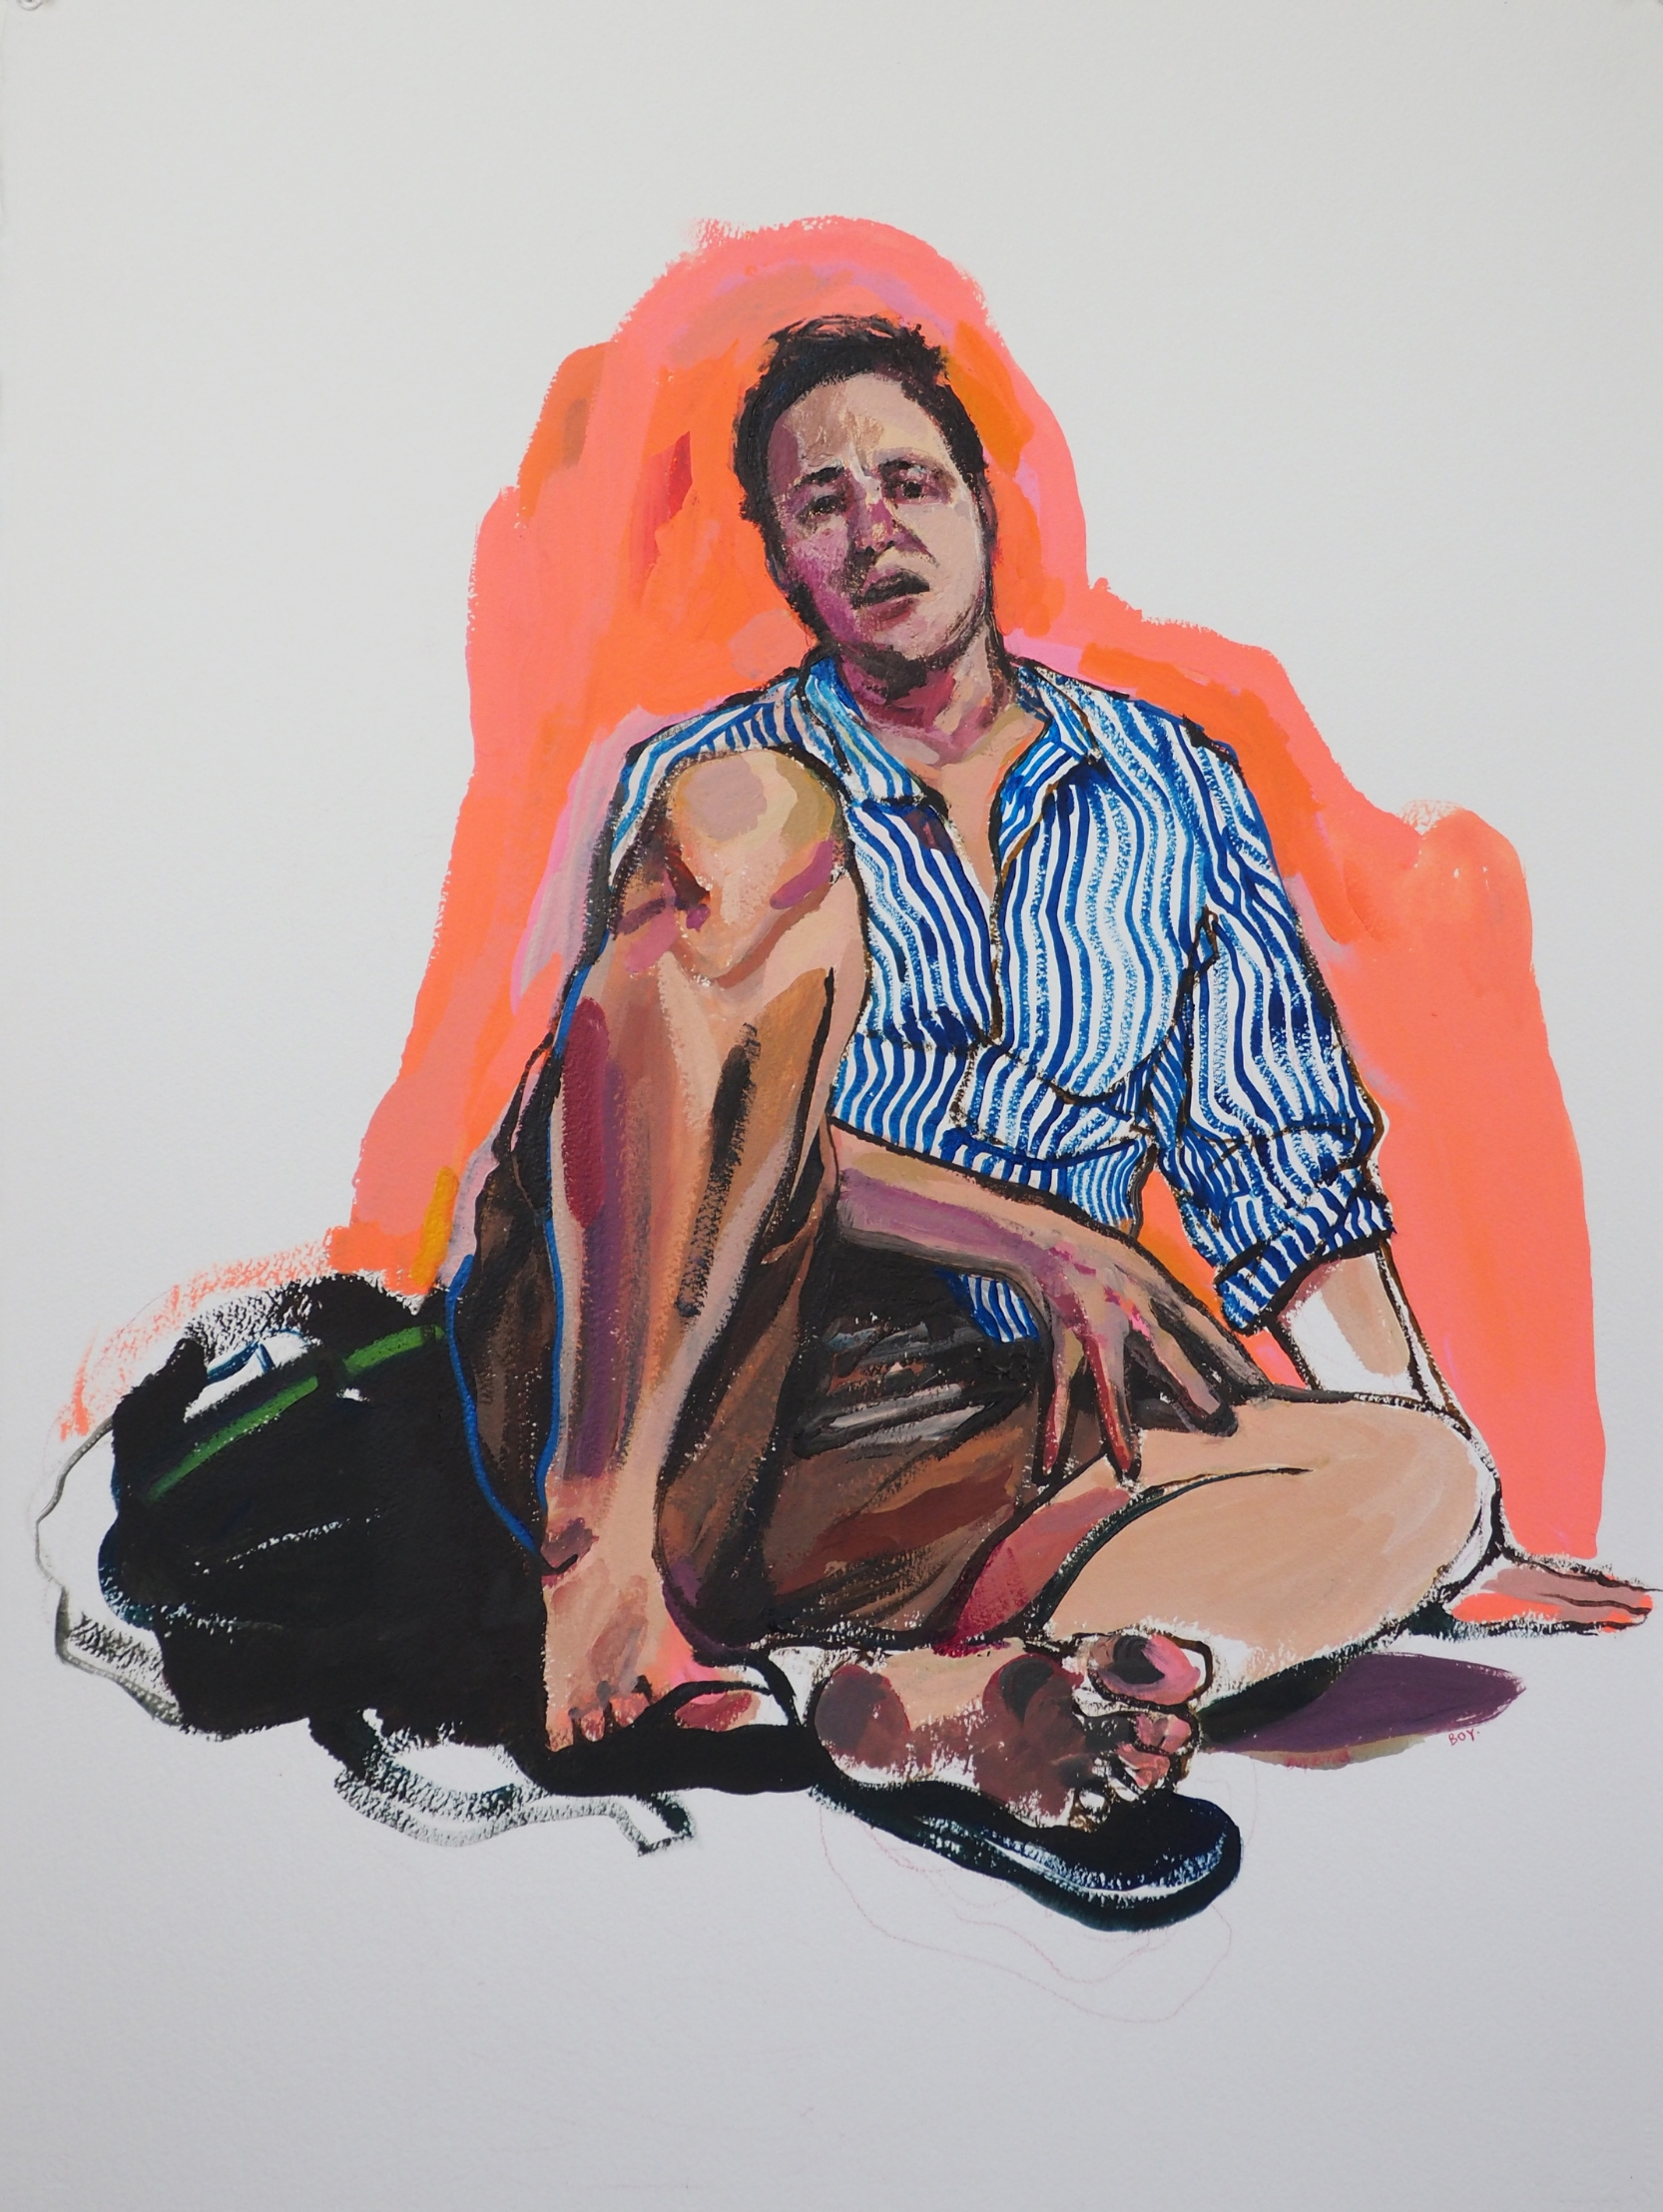 Sitting in Soup  [in response to Alice Neel Drawings and Watercolors 1927-1978, February 19, 2015 - April 18, 2015, David Zwirner Gallery], 2015  Acrylic on Paper 30 x 22 in.